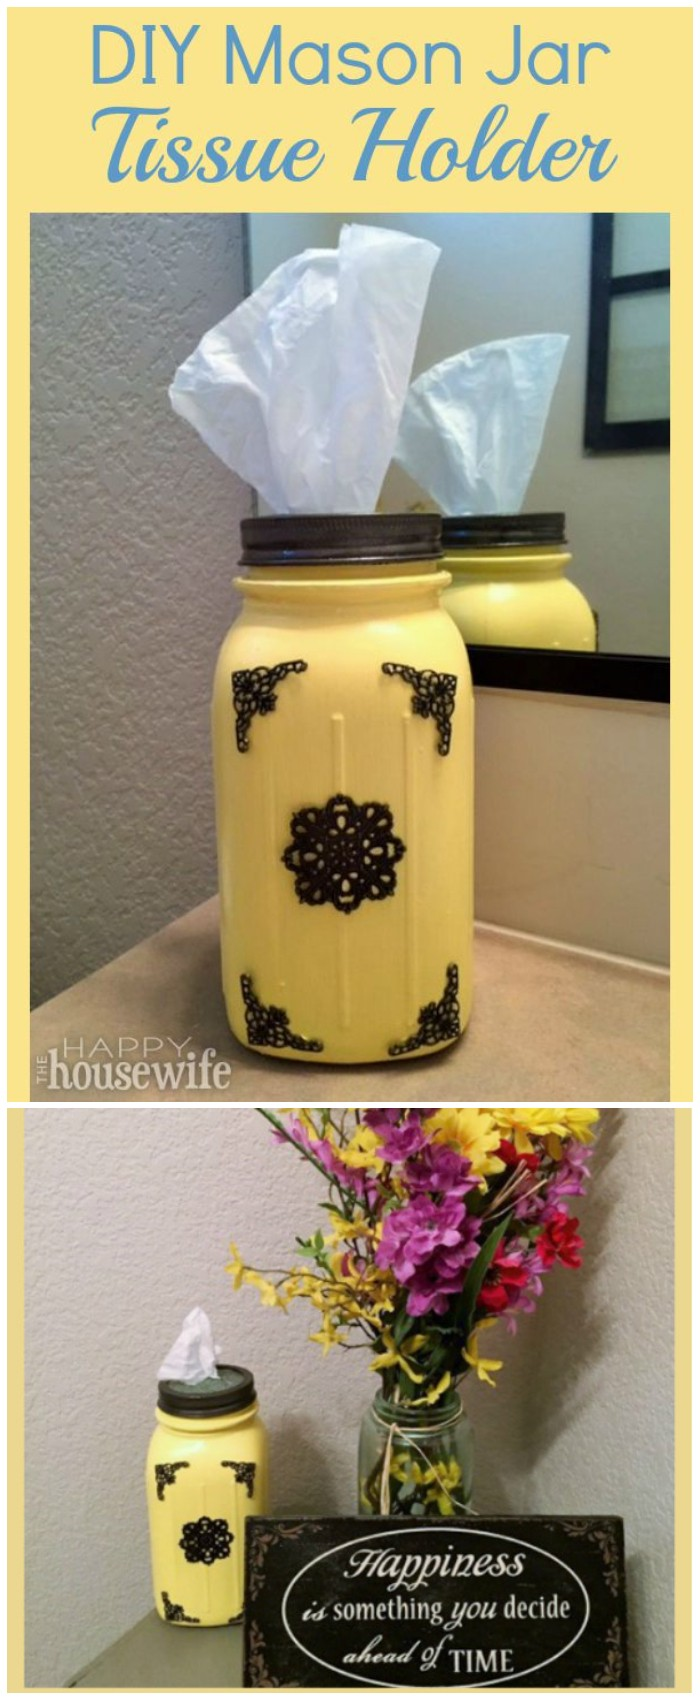 DIY Mason Jar Tissue Holder